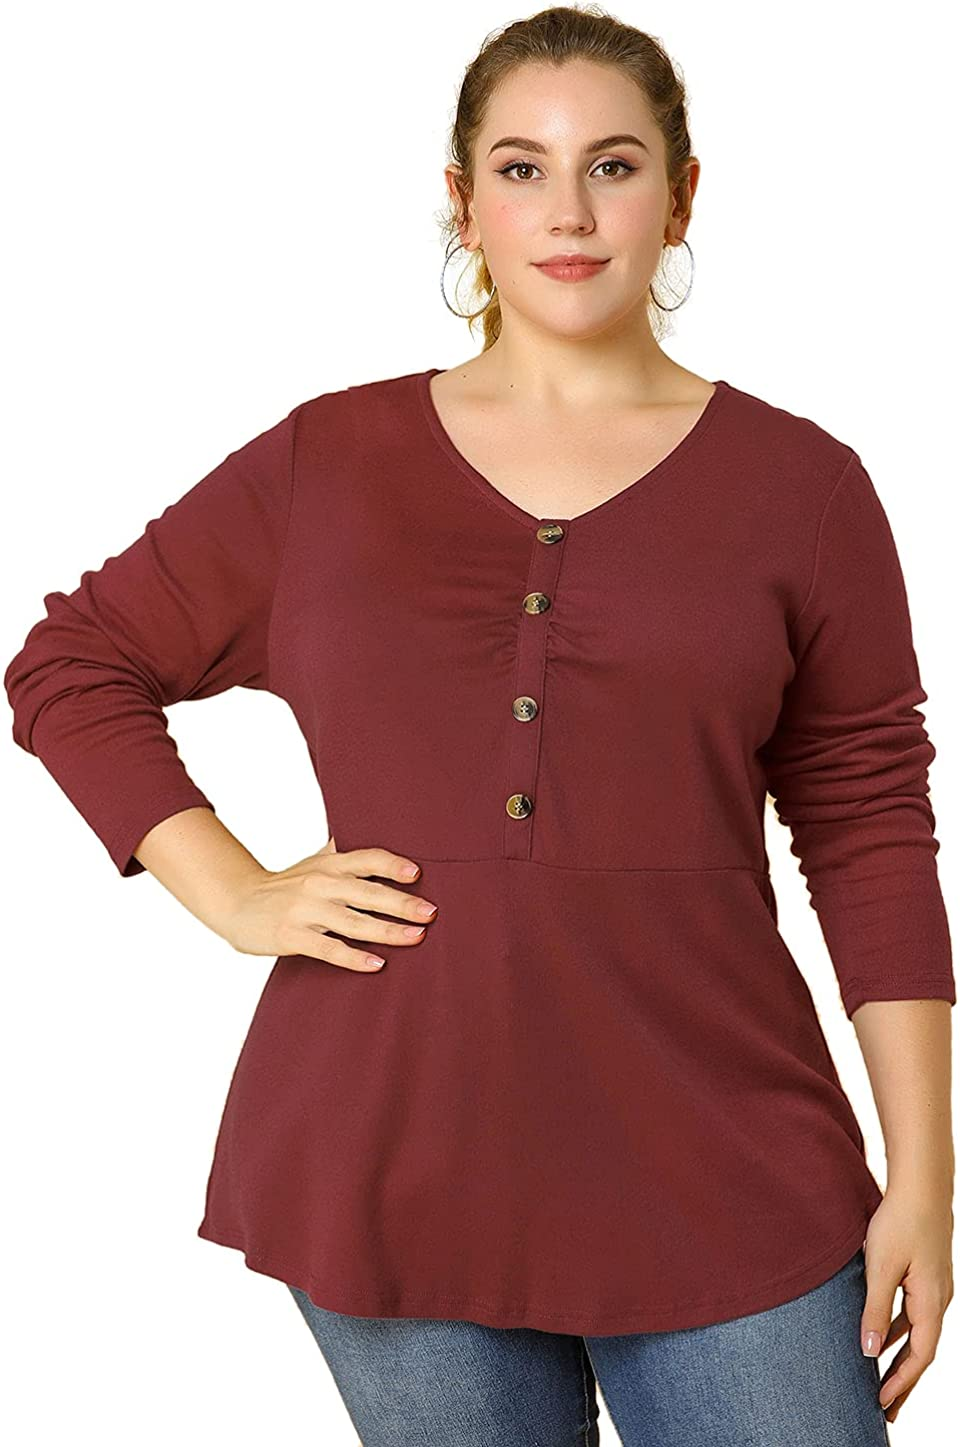 Agnes Orinda Women's Plus Size Tunic Top V Neck Basic Casual Knit Peplum Tops Mothers Day